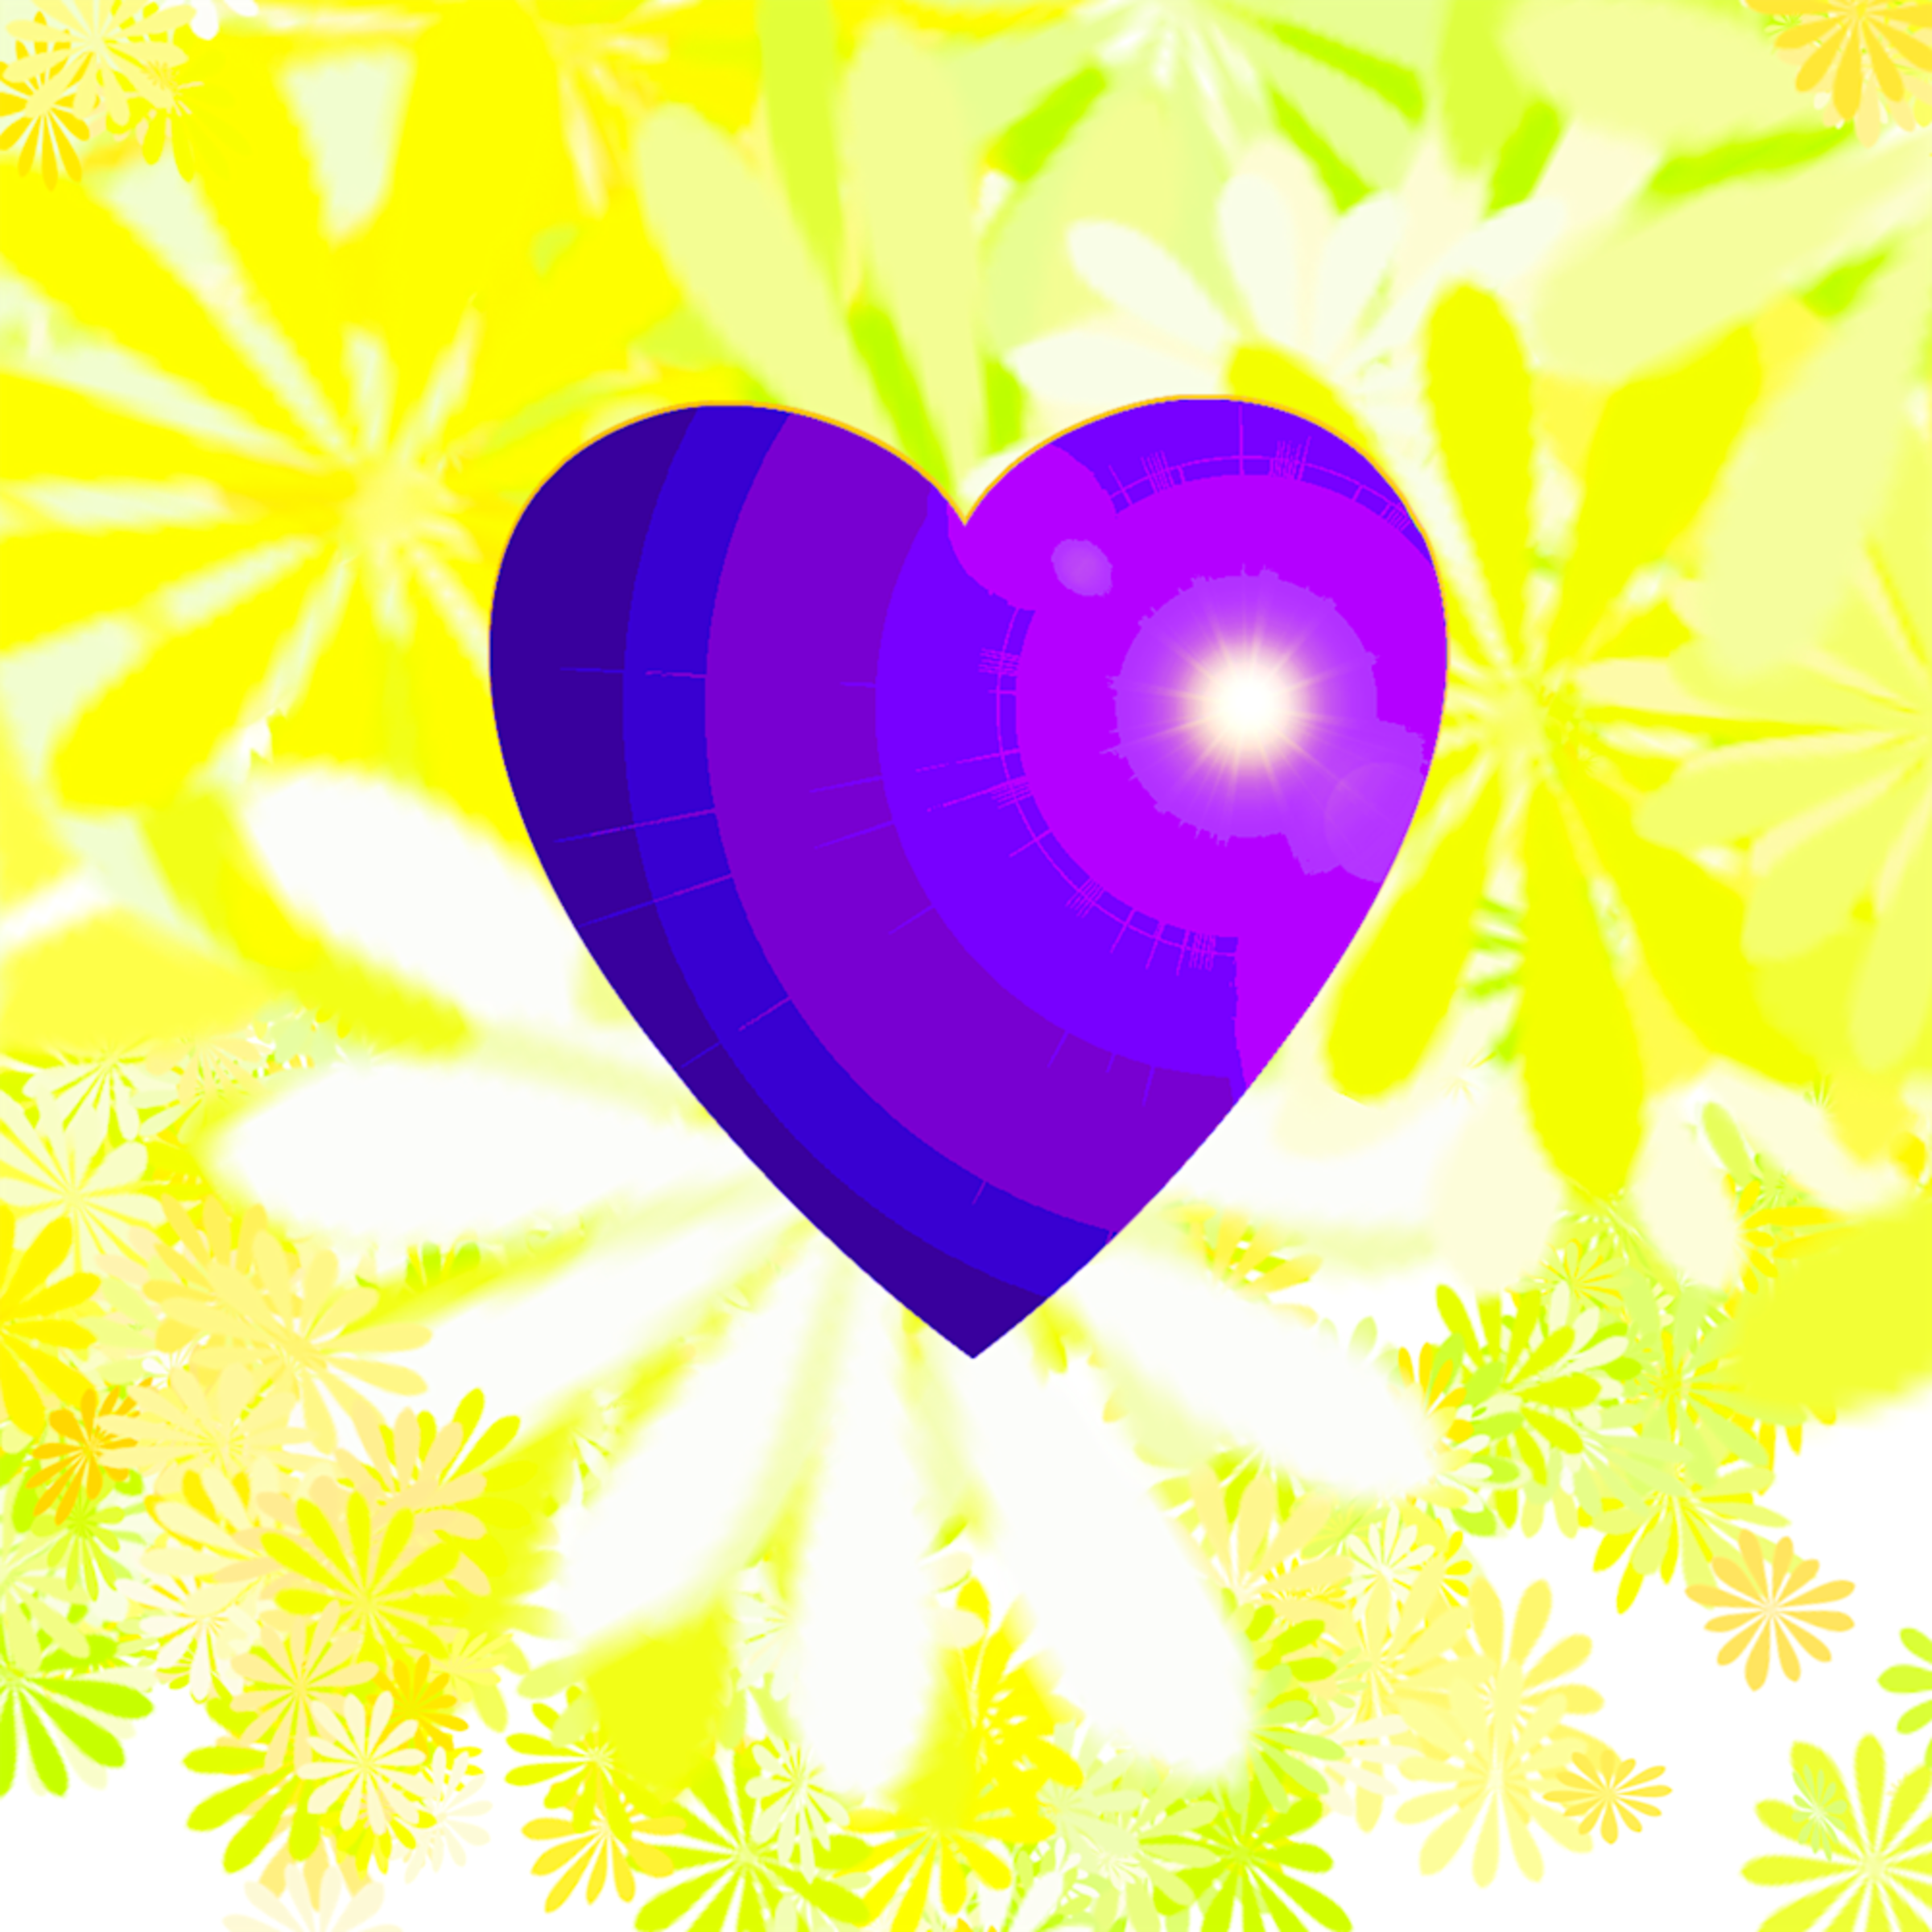 Psychedelic heart sgrzve